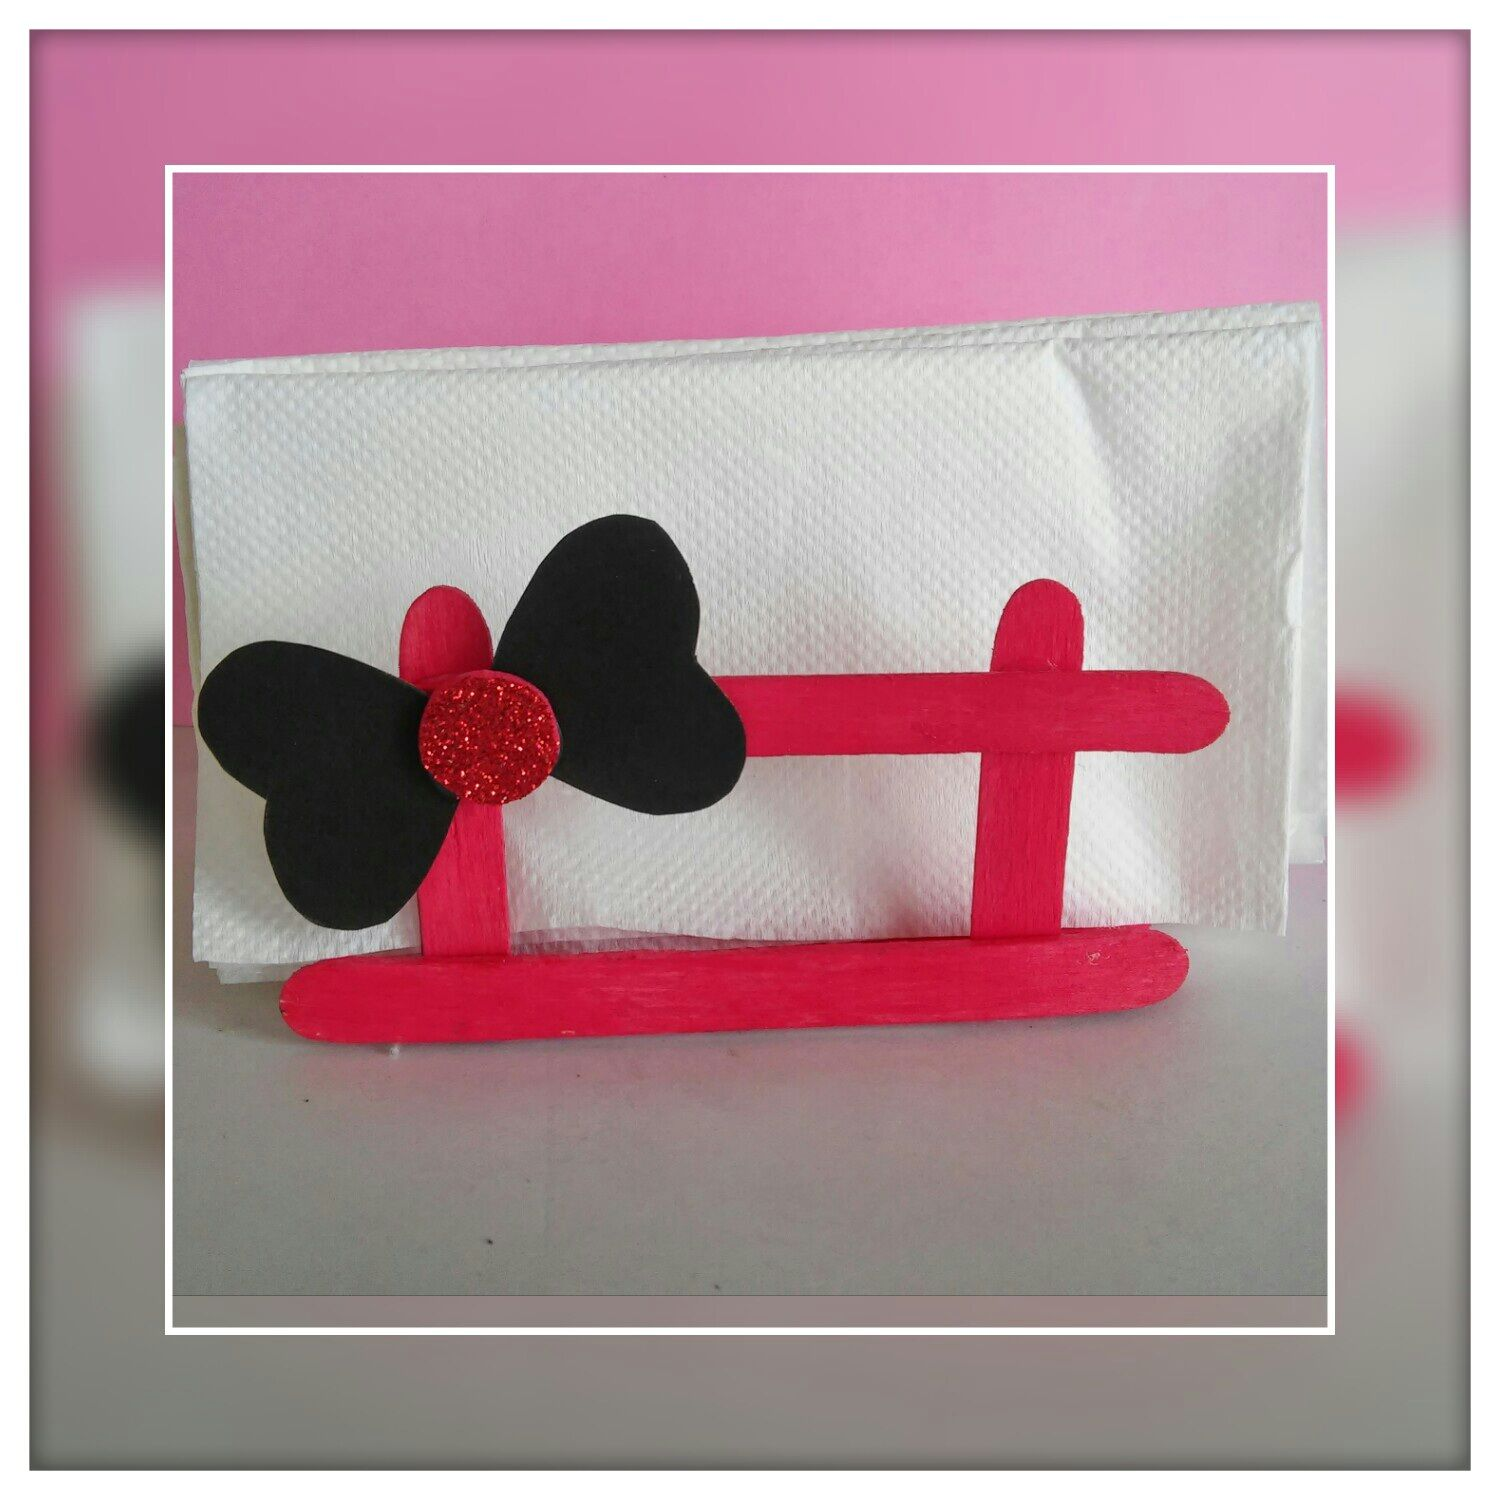 How To Make Napkin Holder Using Popsicle Sticks Quick And